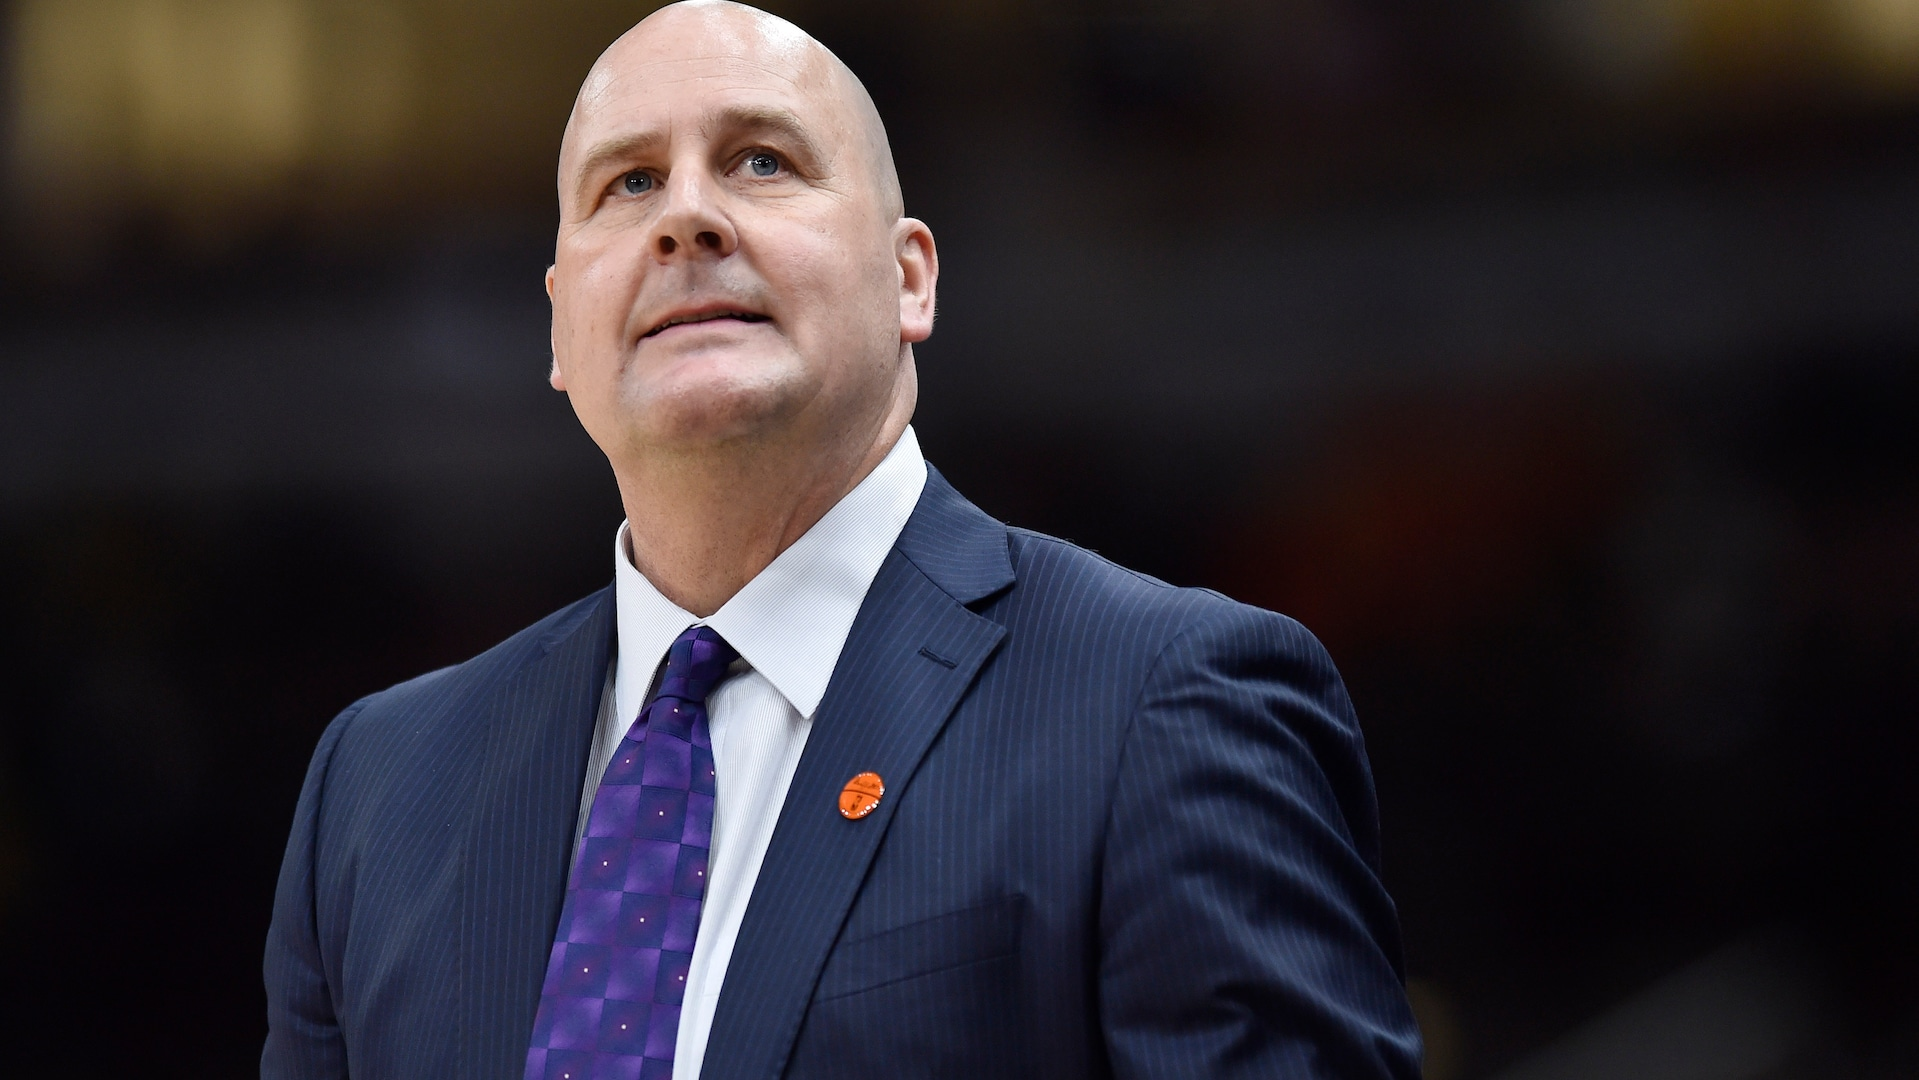 Bulls part ways with coach Jim Boylen